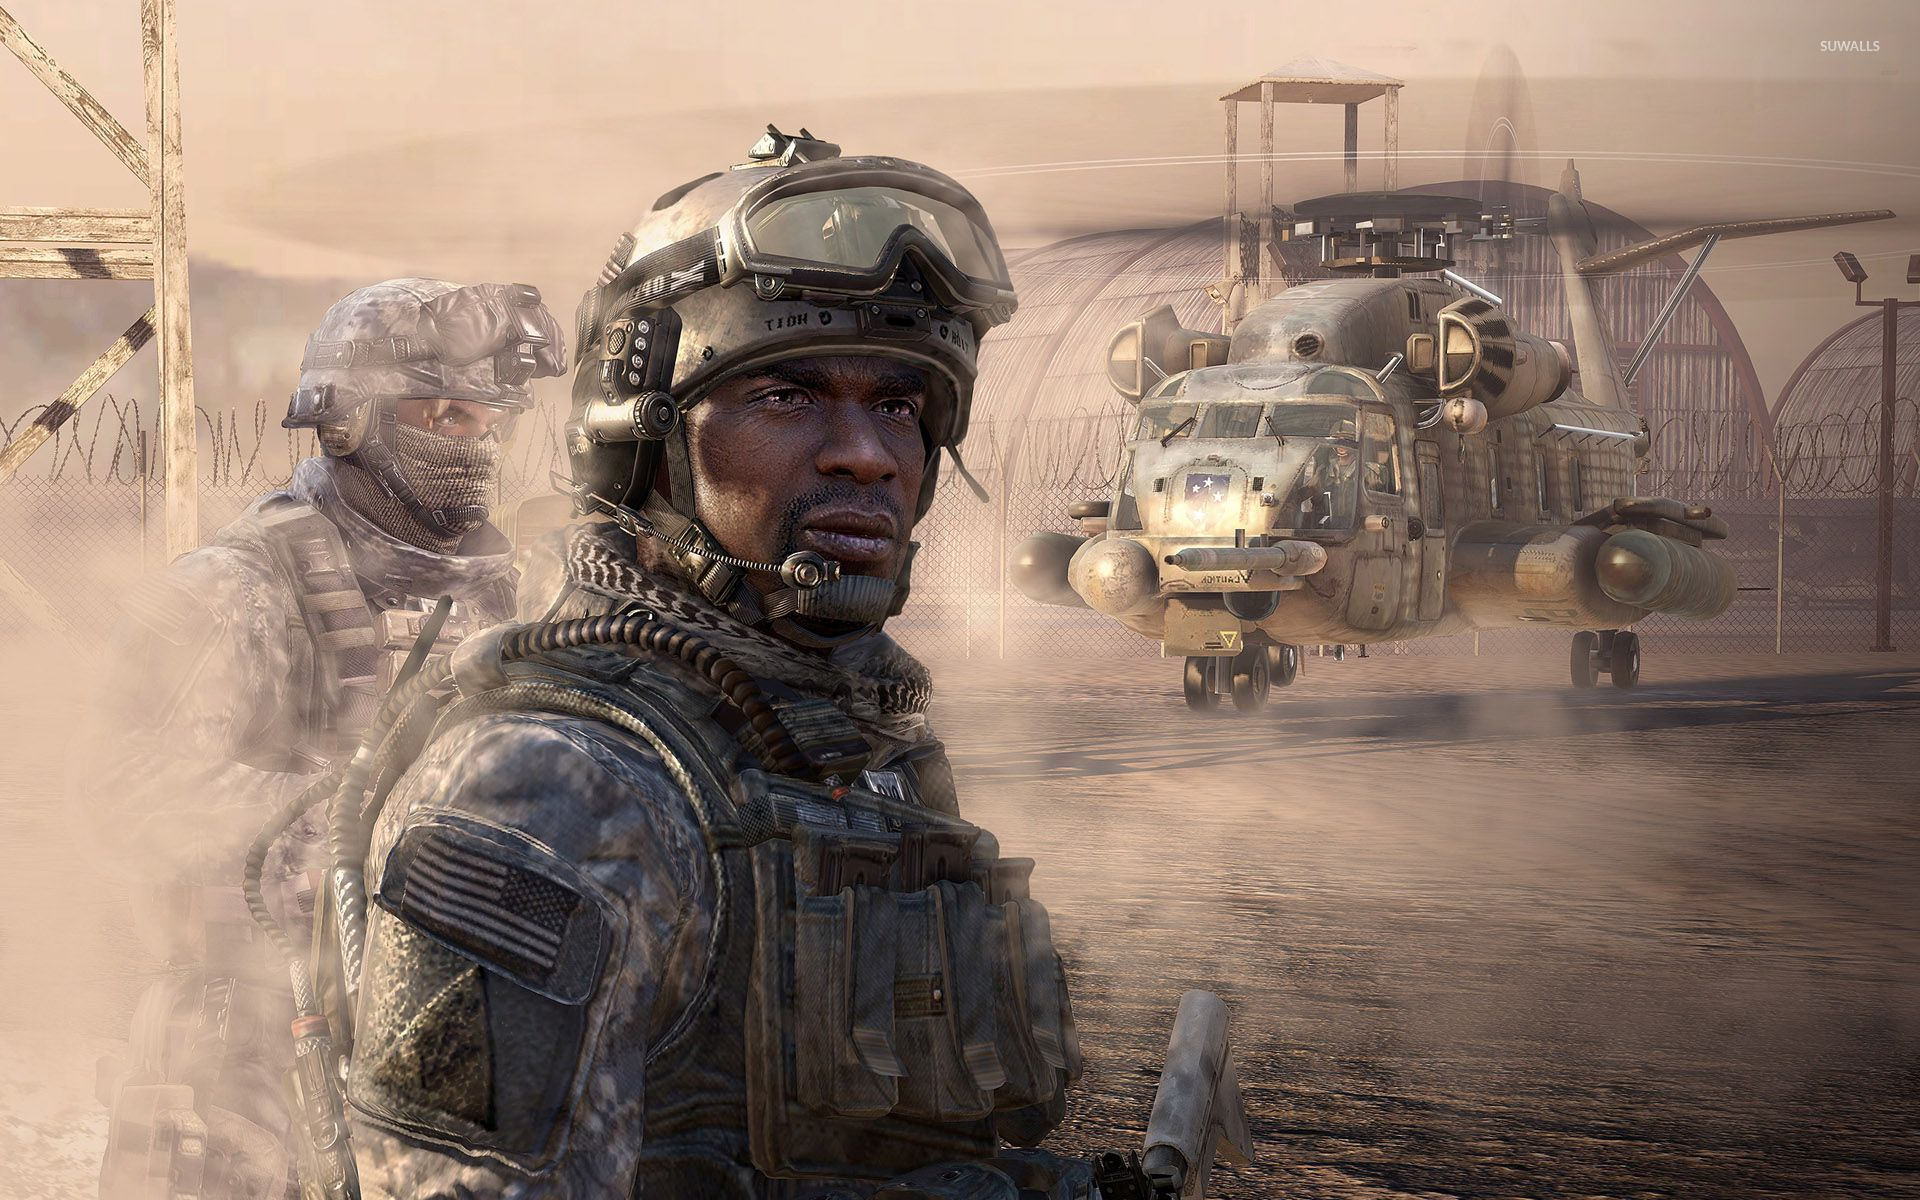 Call Of Duty Modern Warfare 2 Soldiers Wallpaper Game